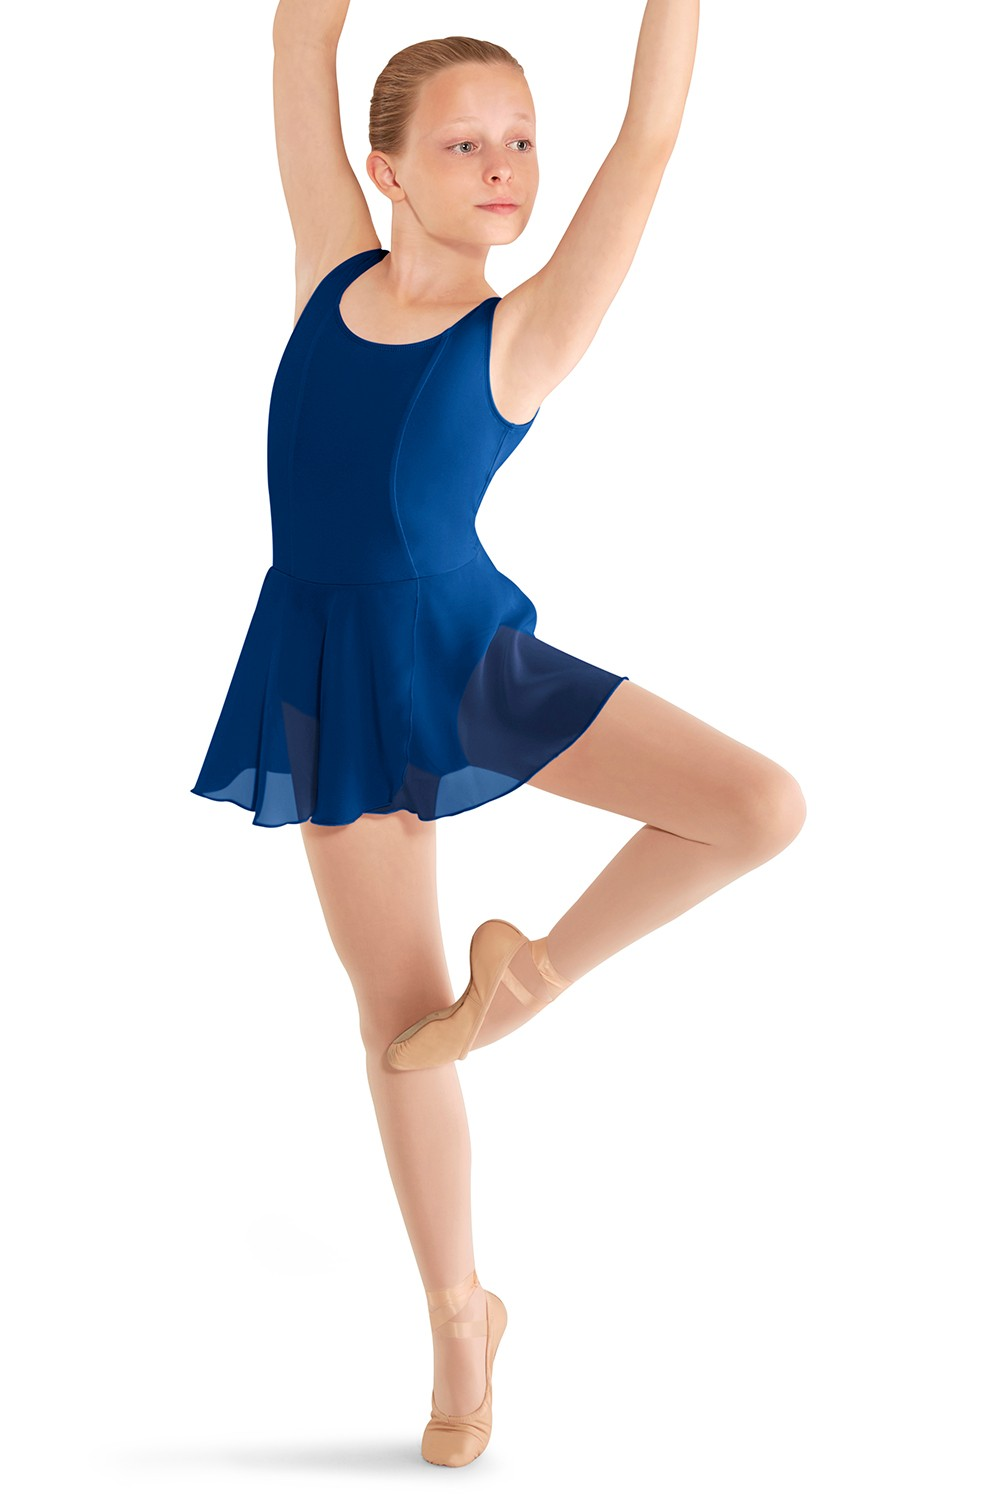 Justaucorps Sans Manches - Jupe Portefeuille Children's Dance Leotards